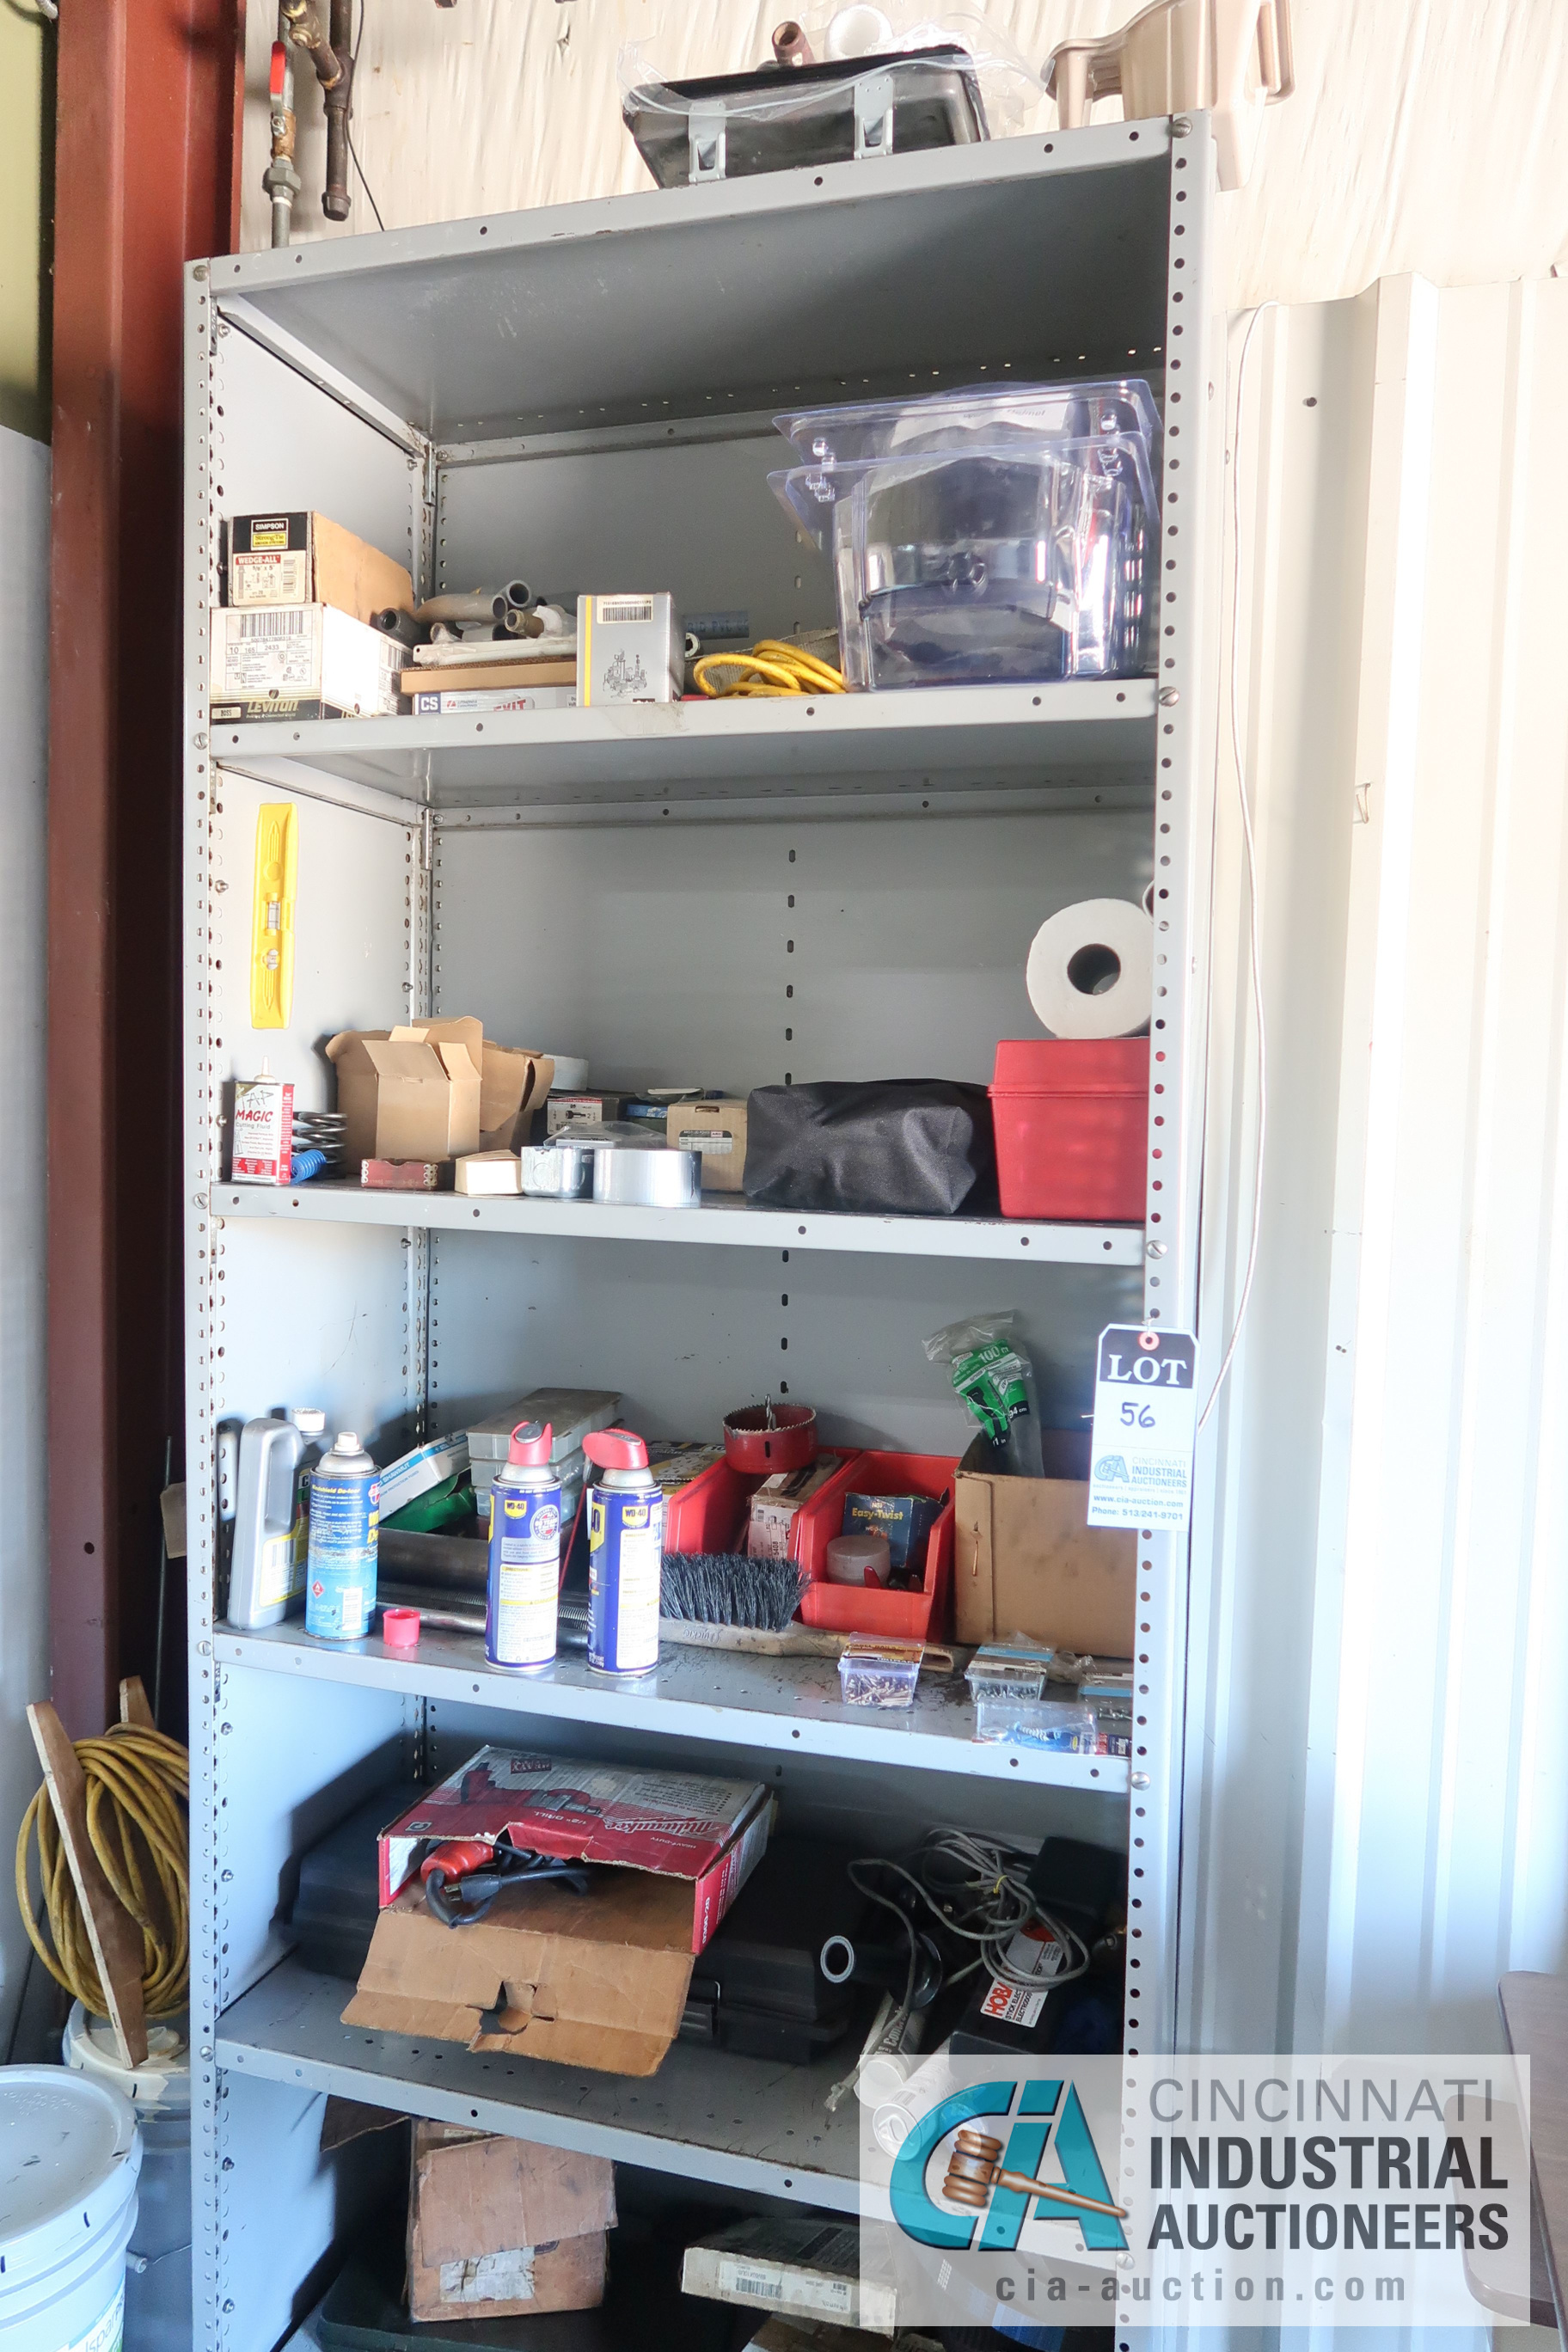 Lot 56 - (LOT) MISCELLANEOUS SHOP SUPPLIES WITH SHELVING AND STORAGE CABINET